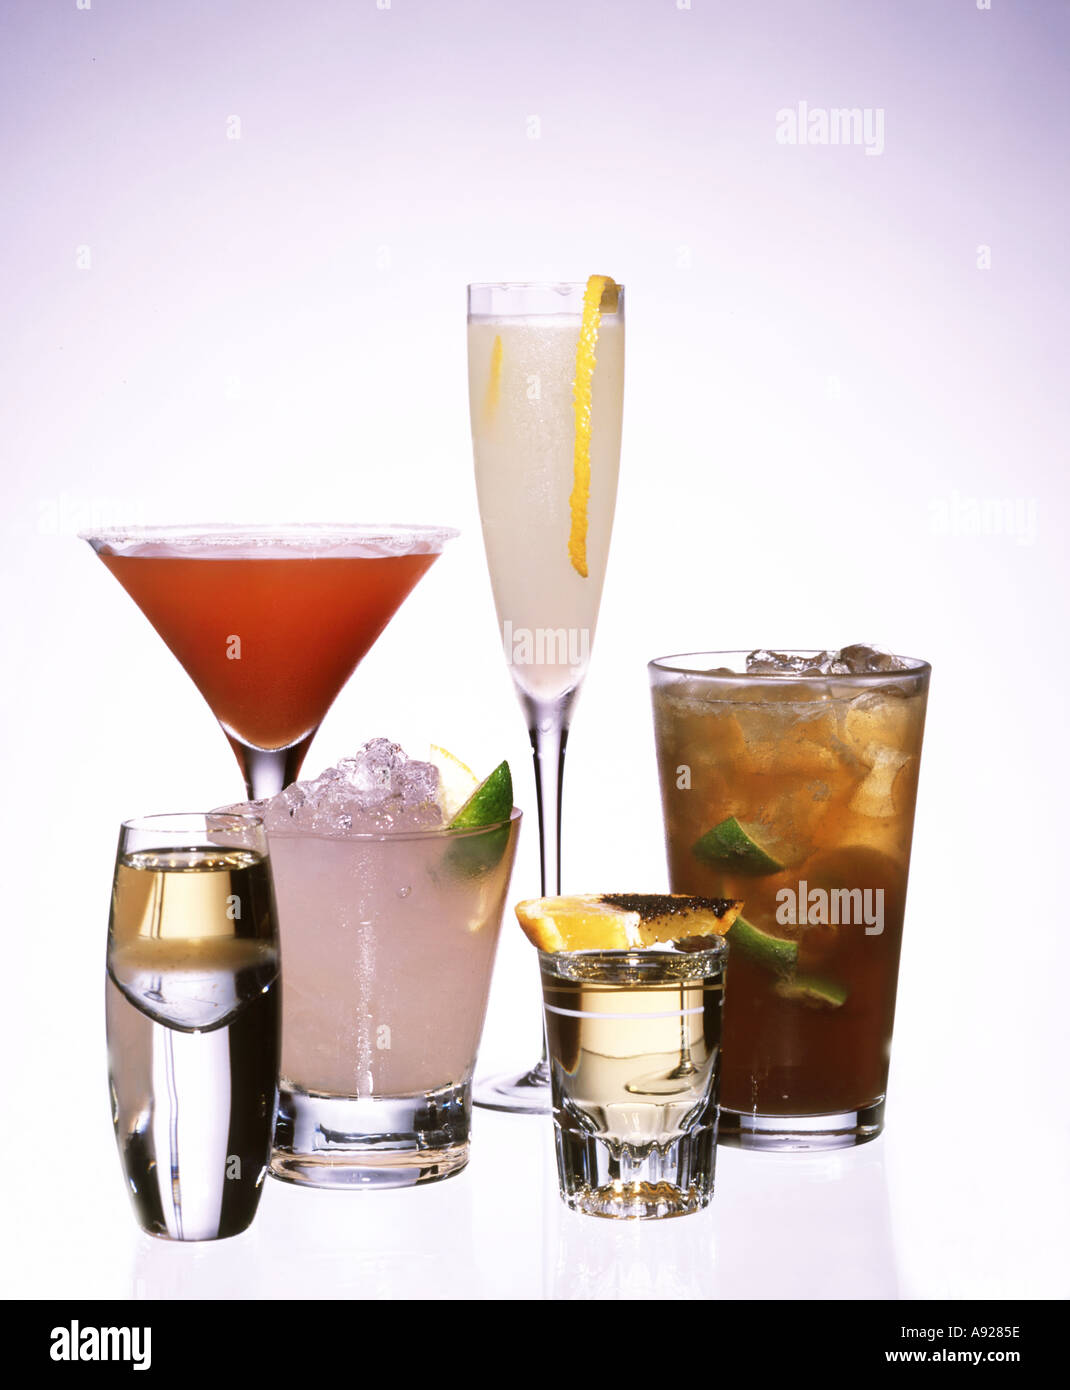 Shots Shooters Drinks Alcohol High Resolution Stock Photography And Images Alamy,Prime Rib Recipes Food Network